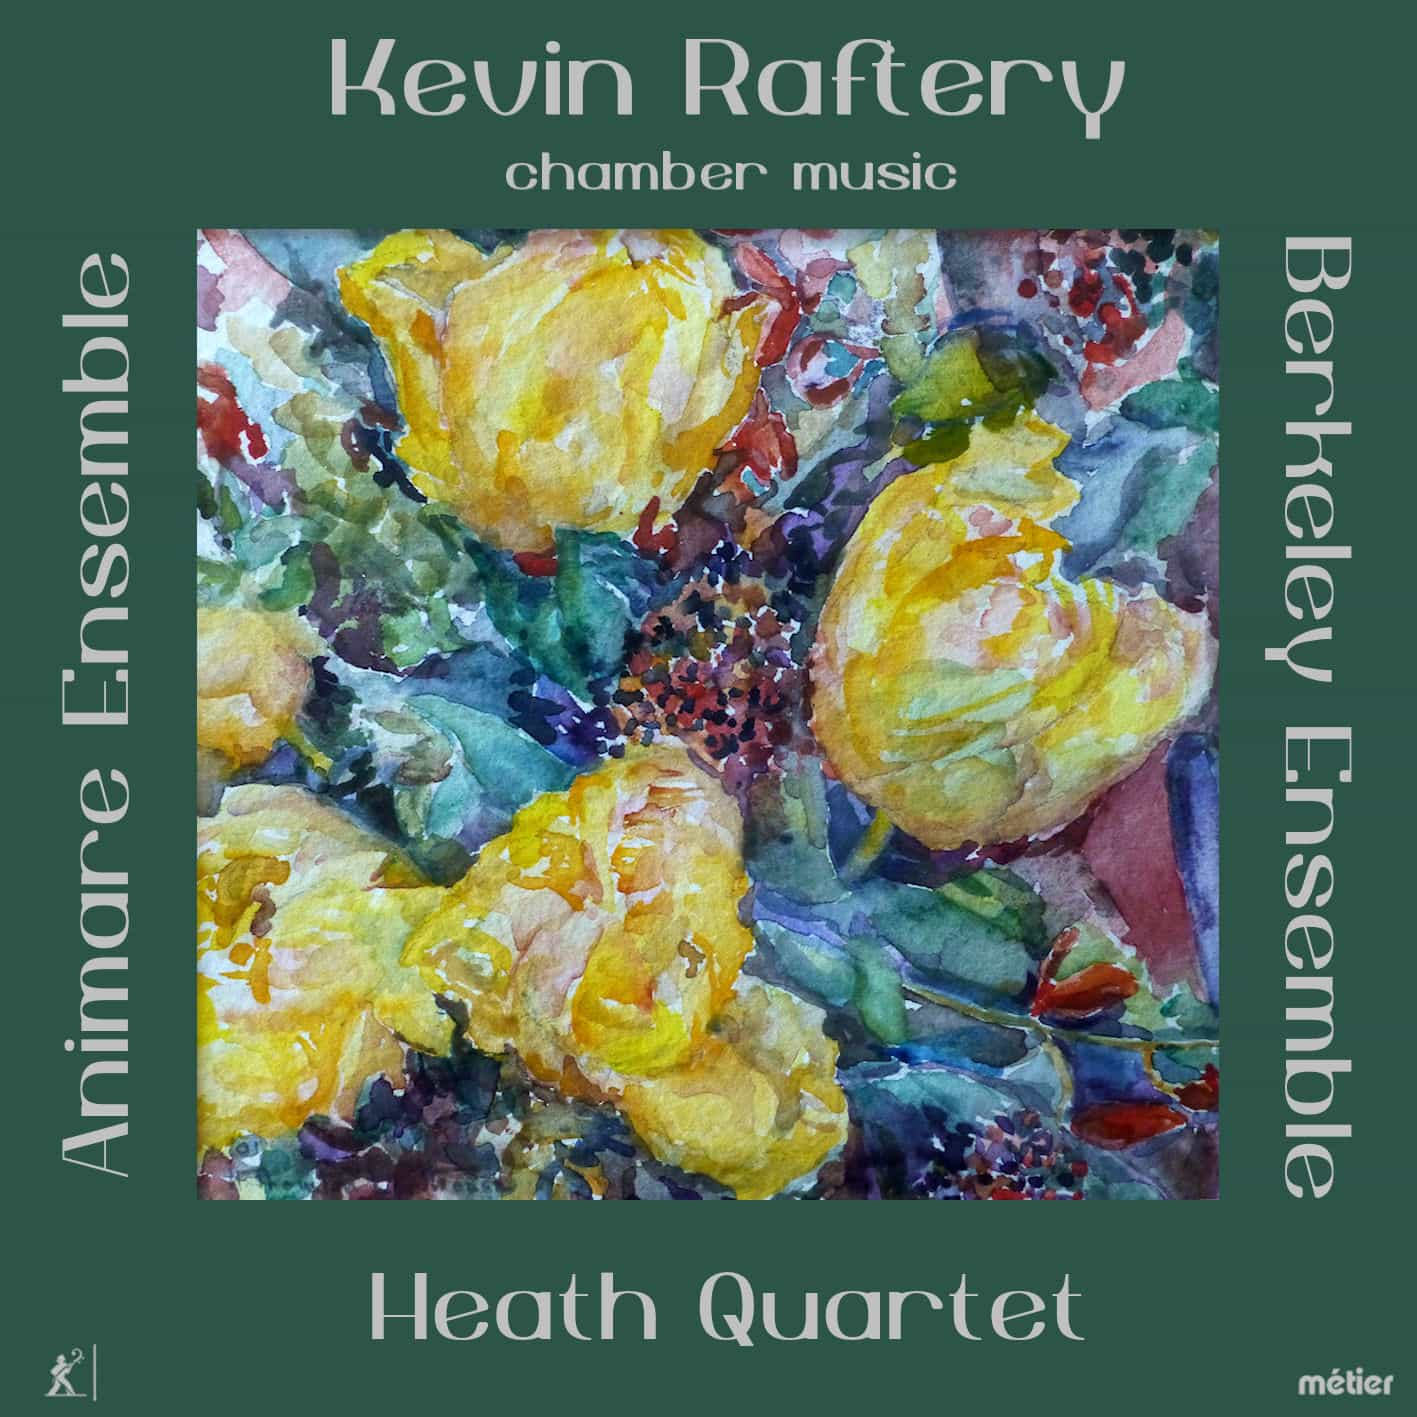 Kevin Raftery Chamber Music